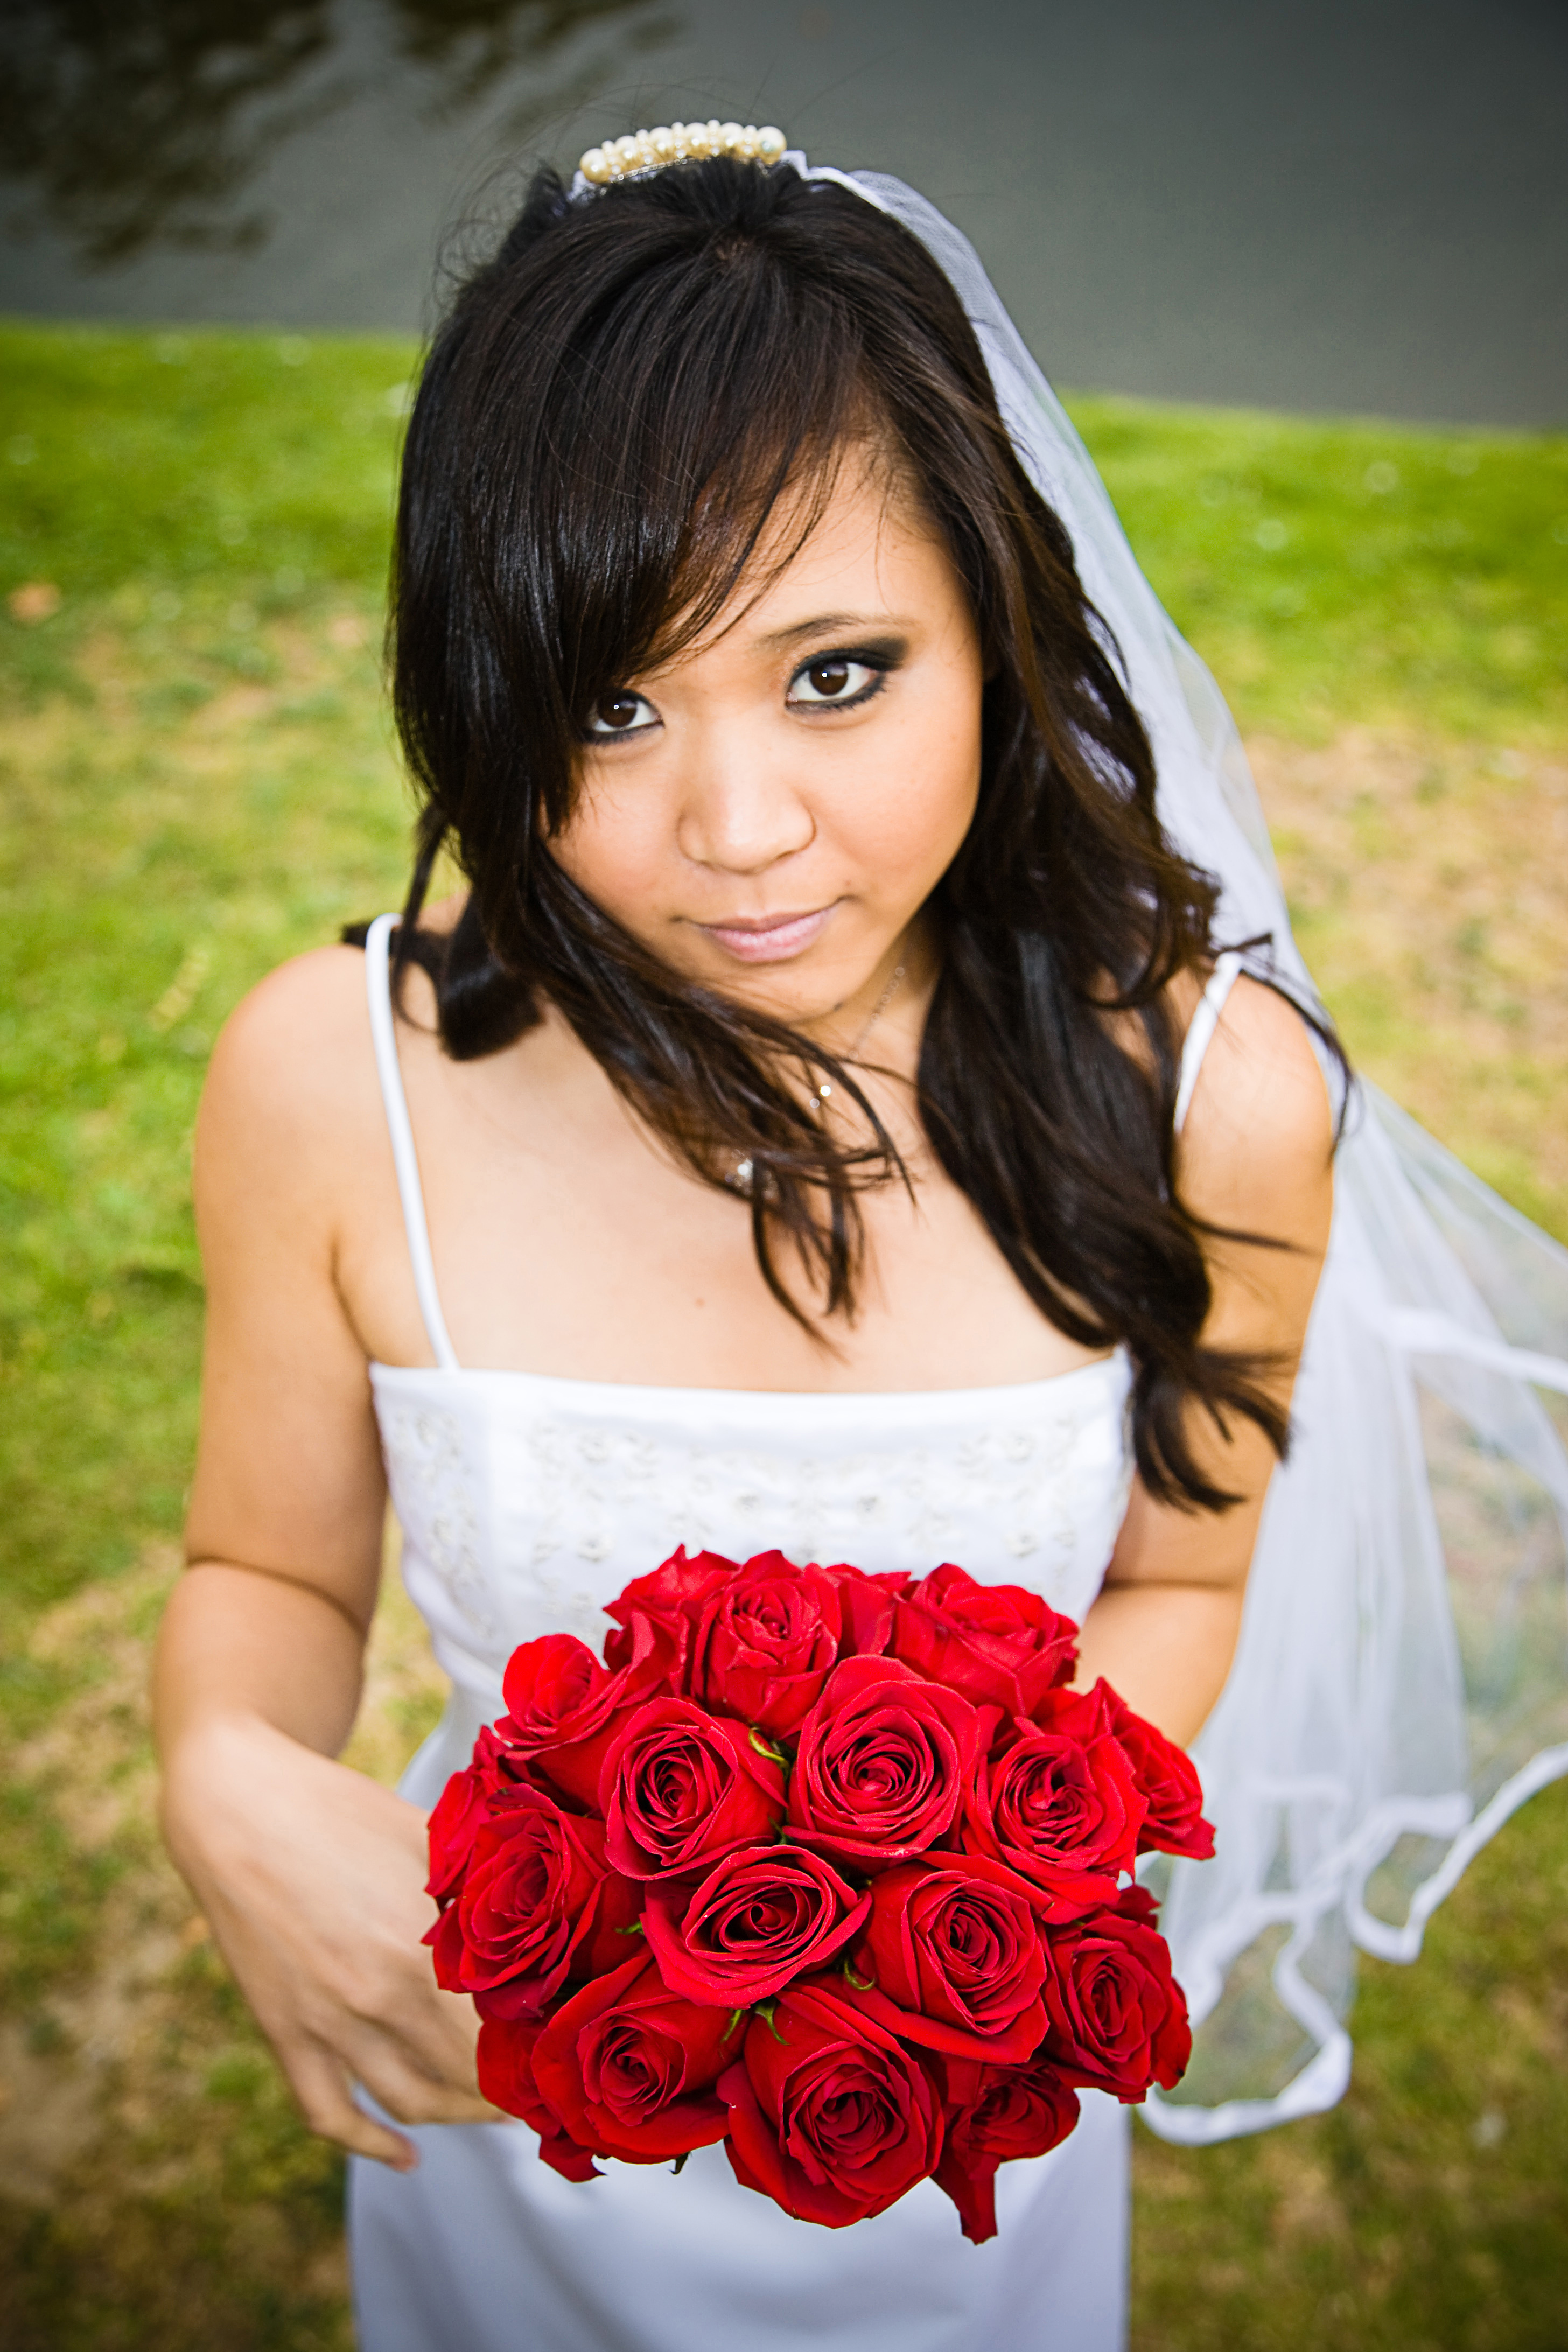 red, Bride, Bouquet, Waiting, Asian, Eyes, Fowers, Allen taylor photography